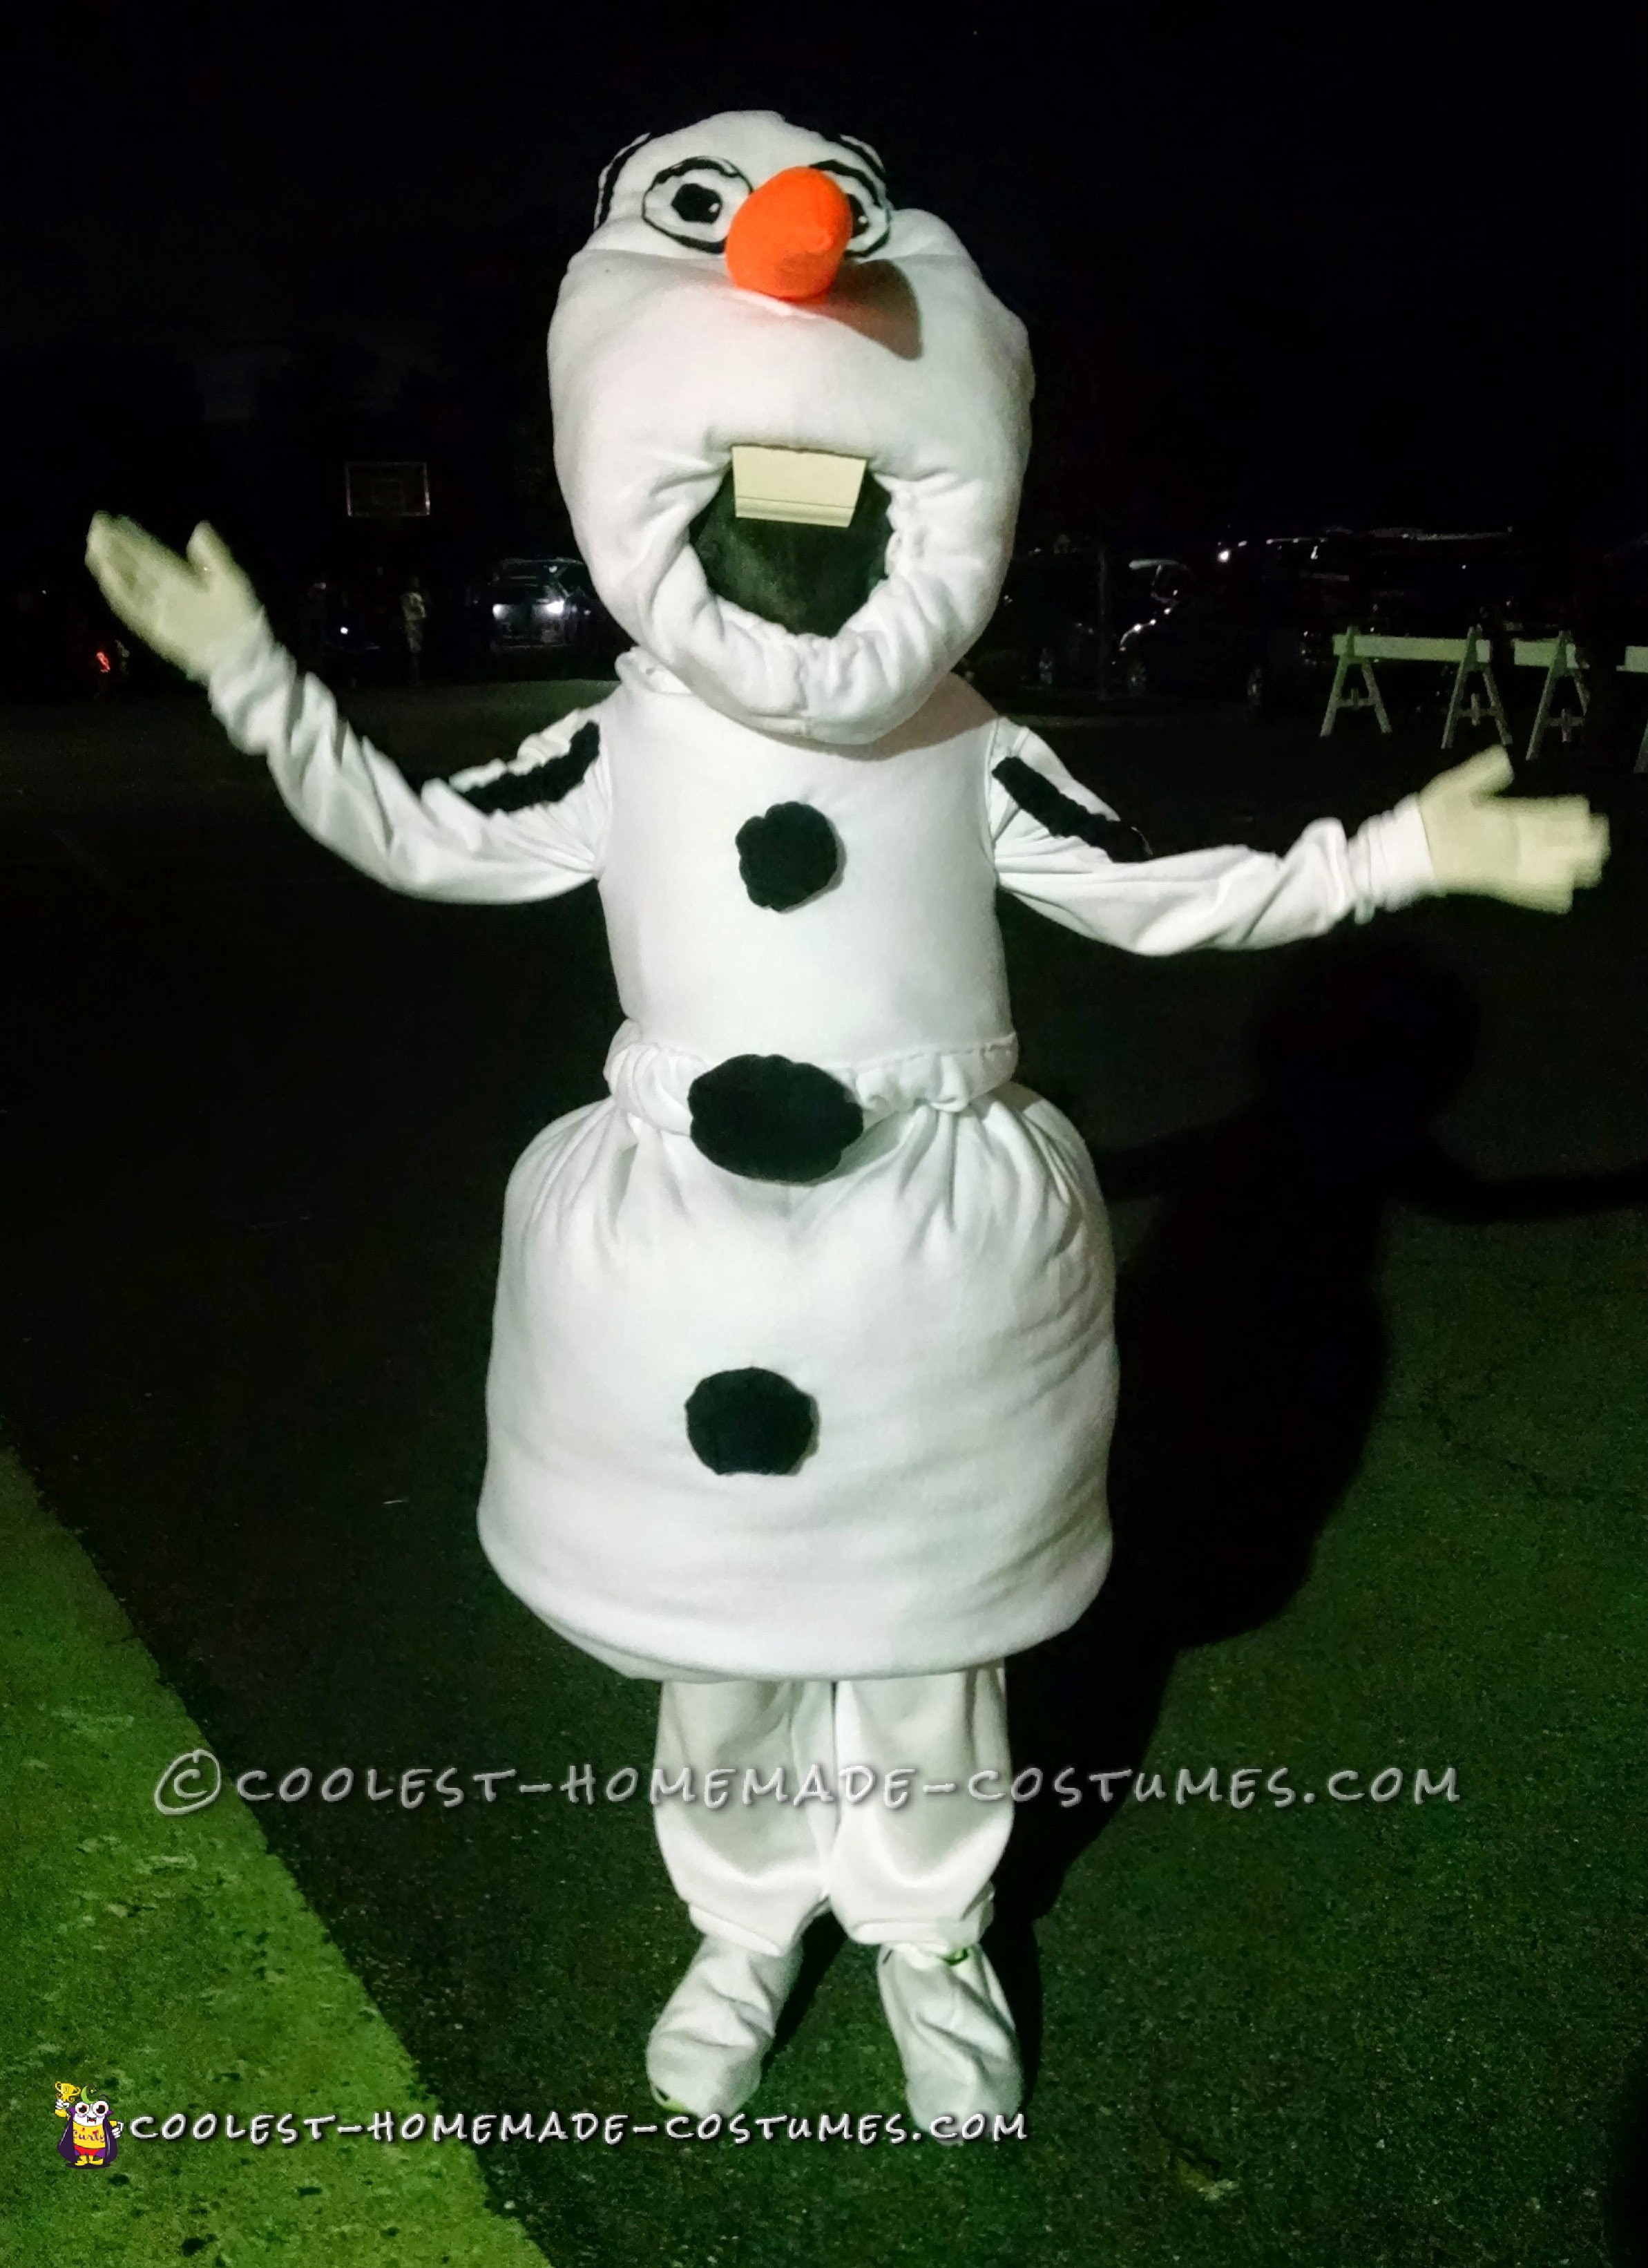 Child's Olaf Costume That Gives Warm Hugs